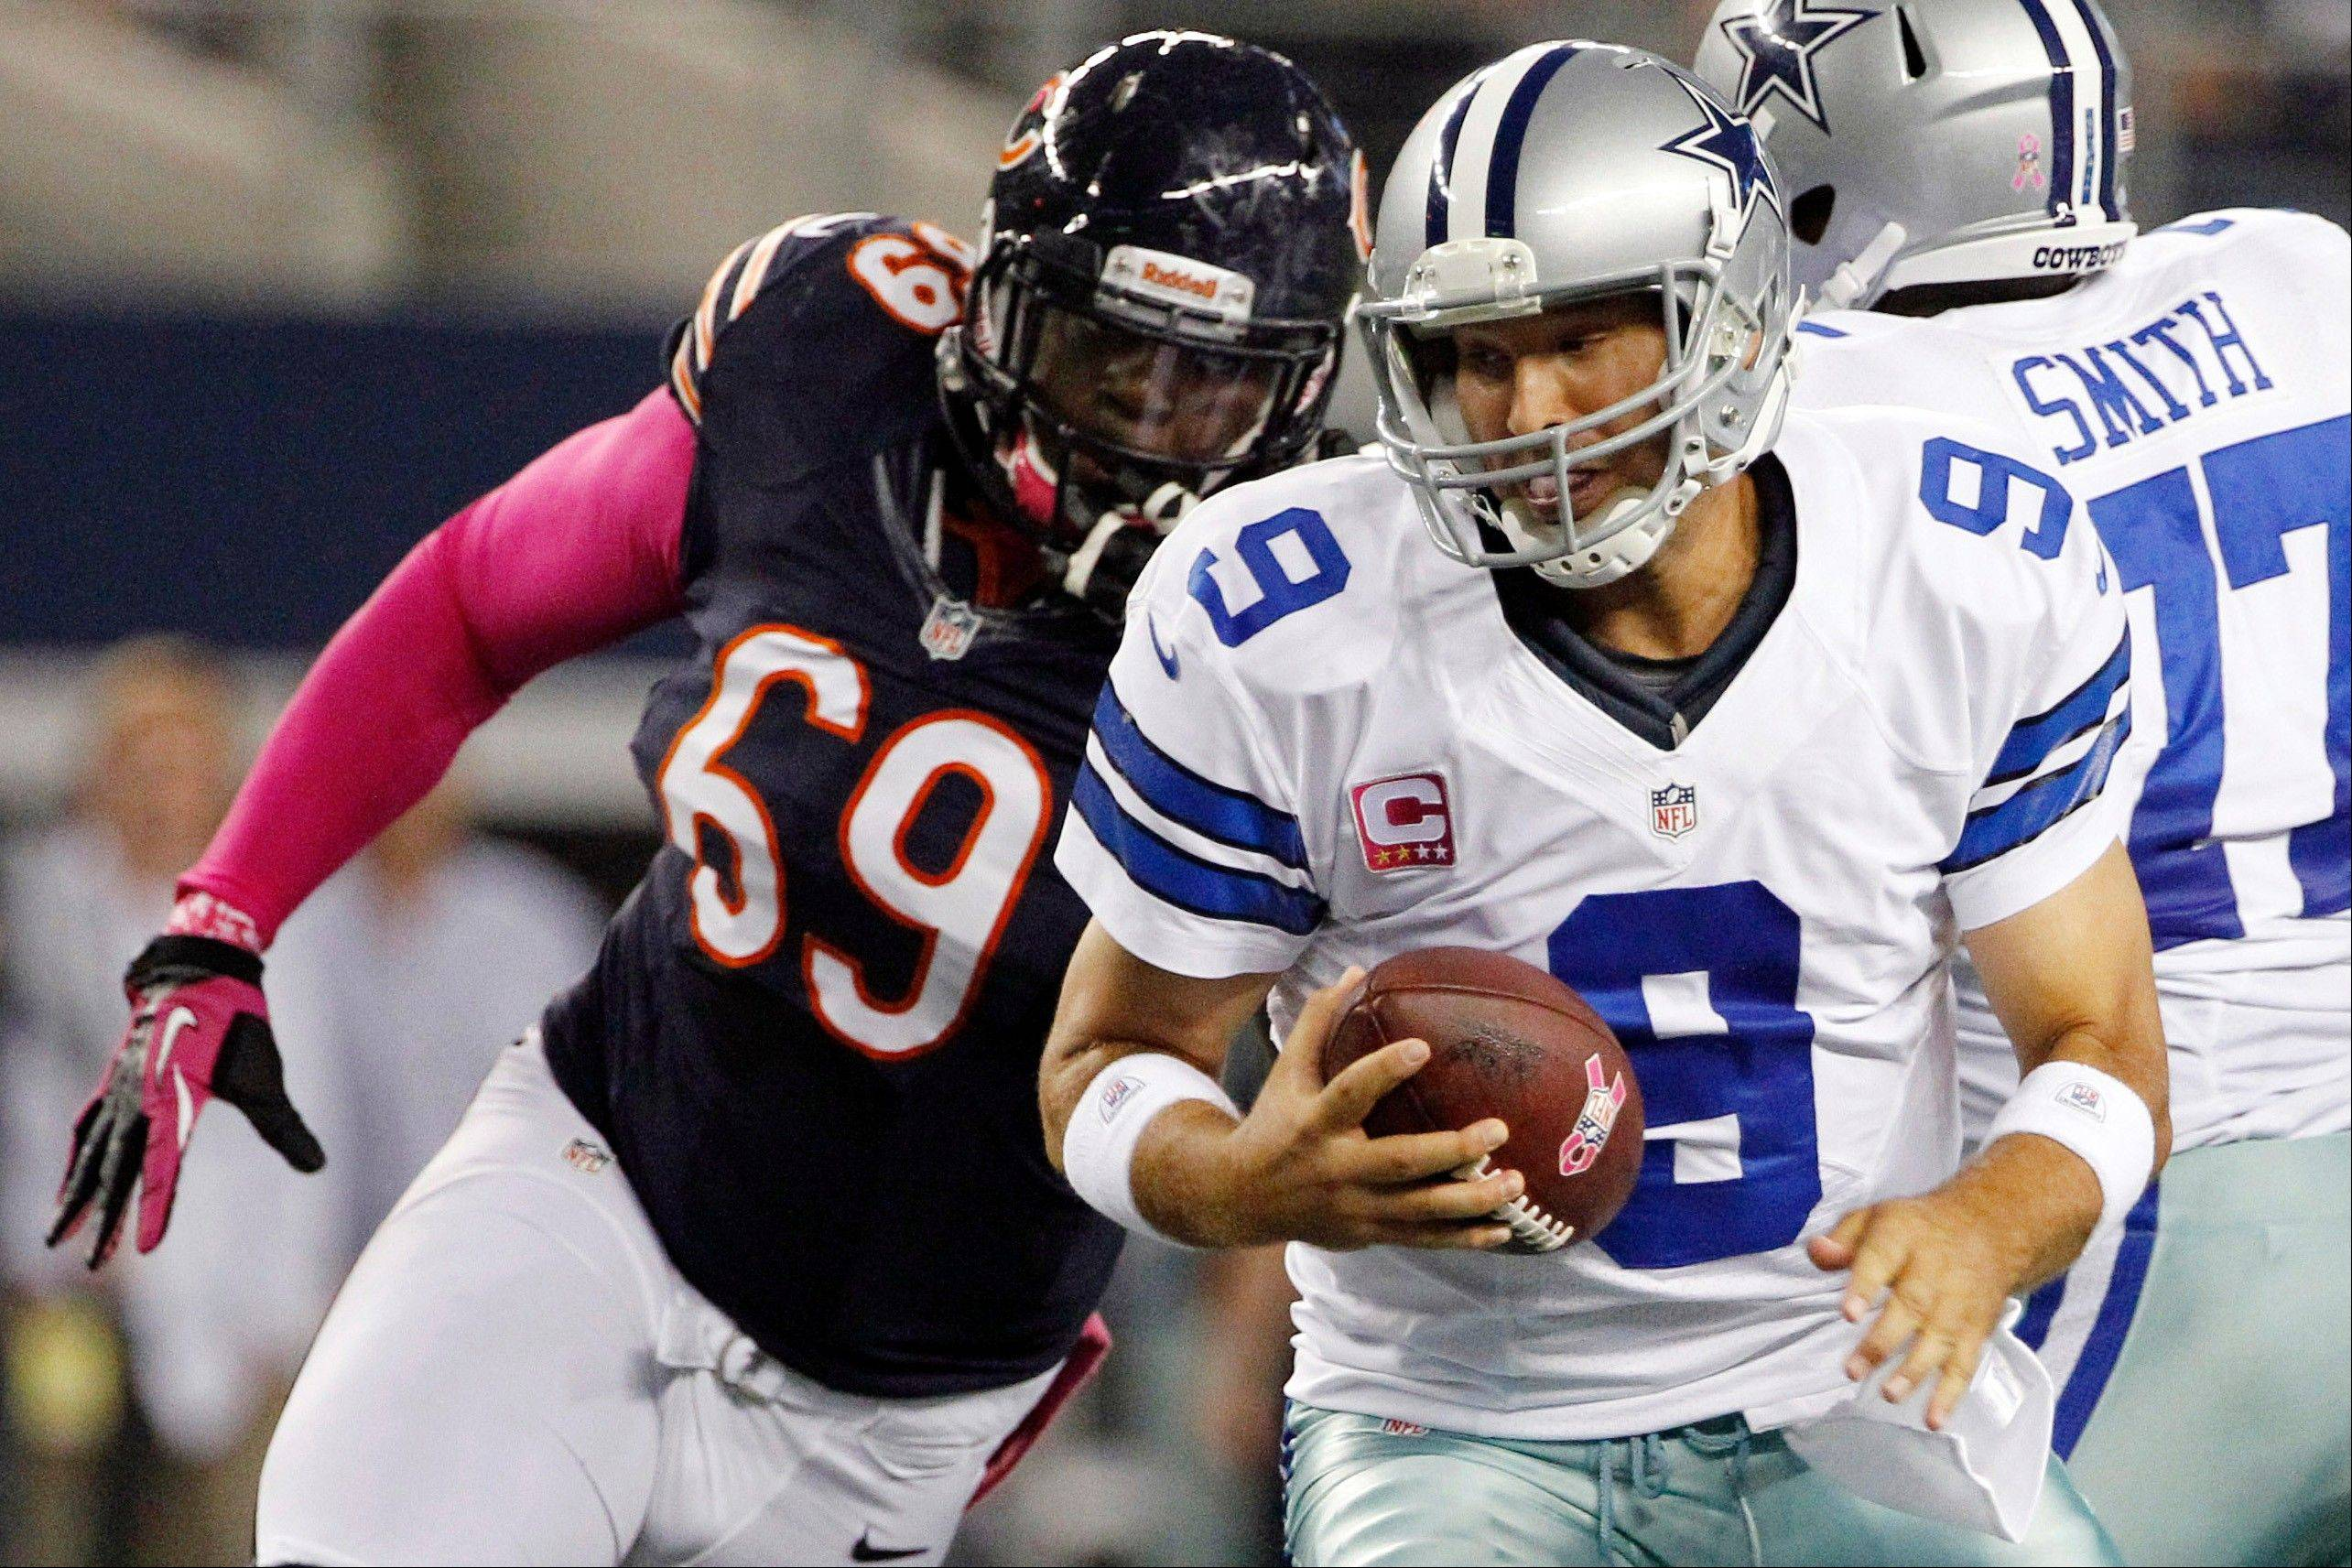 Chicago Bears defensive tackle Henry Melton moves in to sack Dallas Cowboys quarterback Tony Romo during the first half.